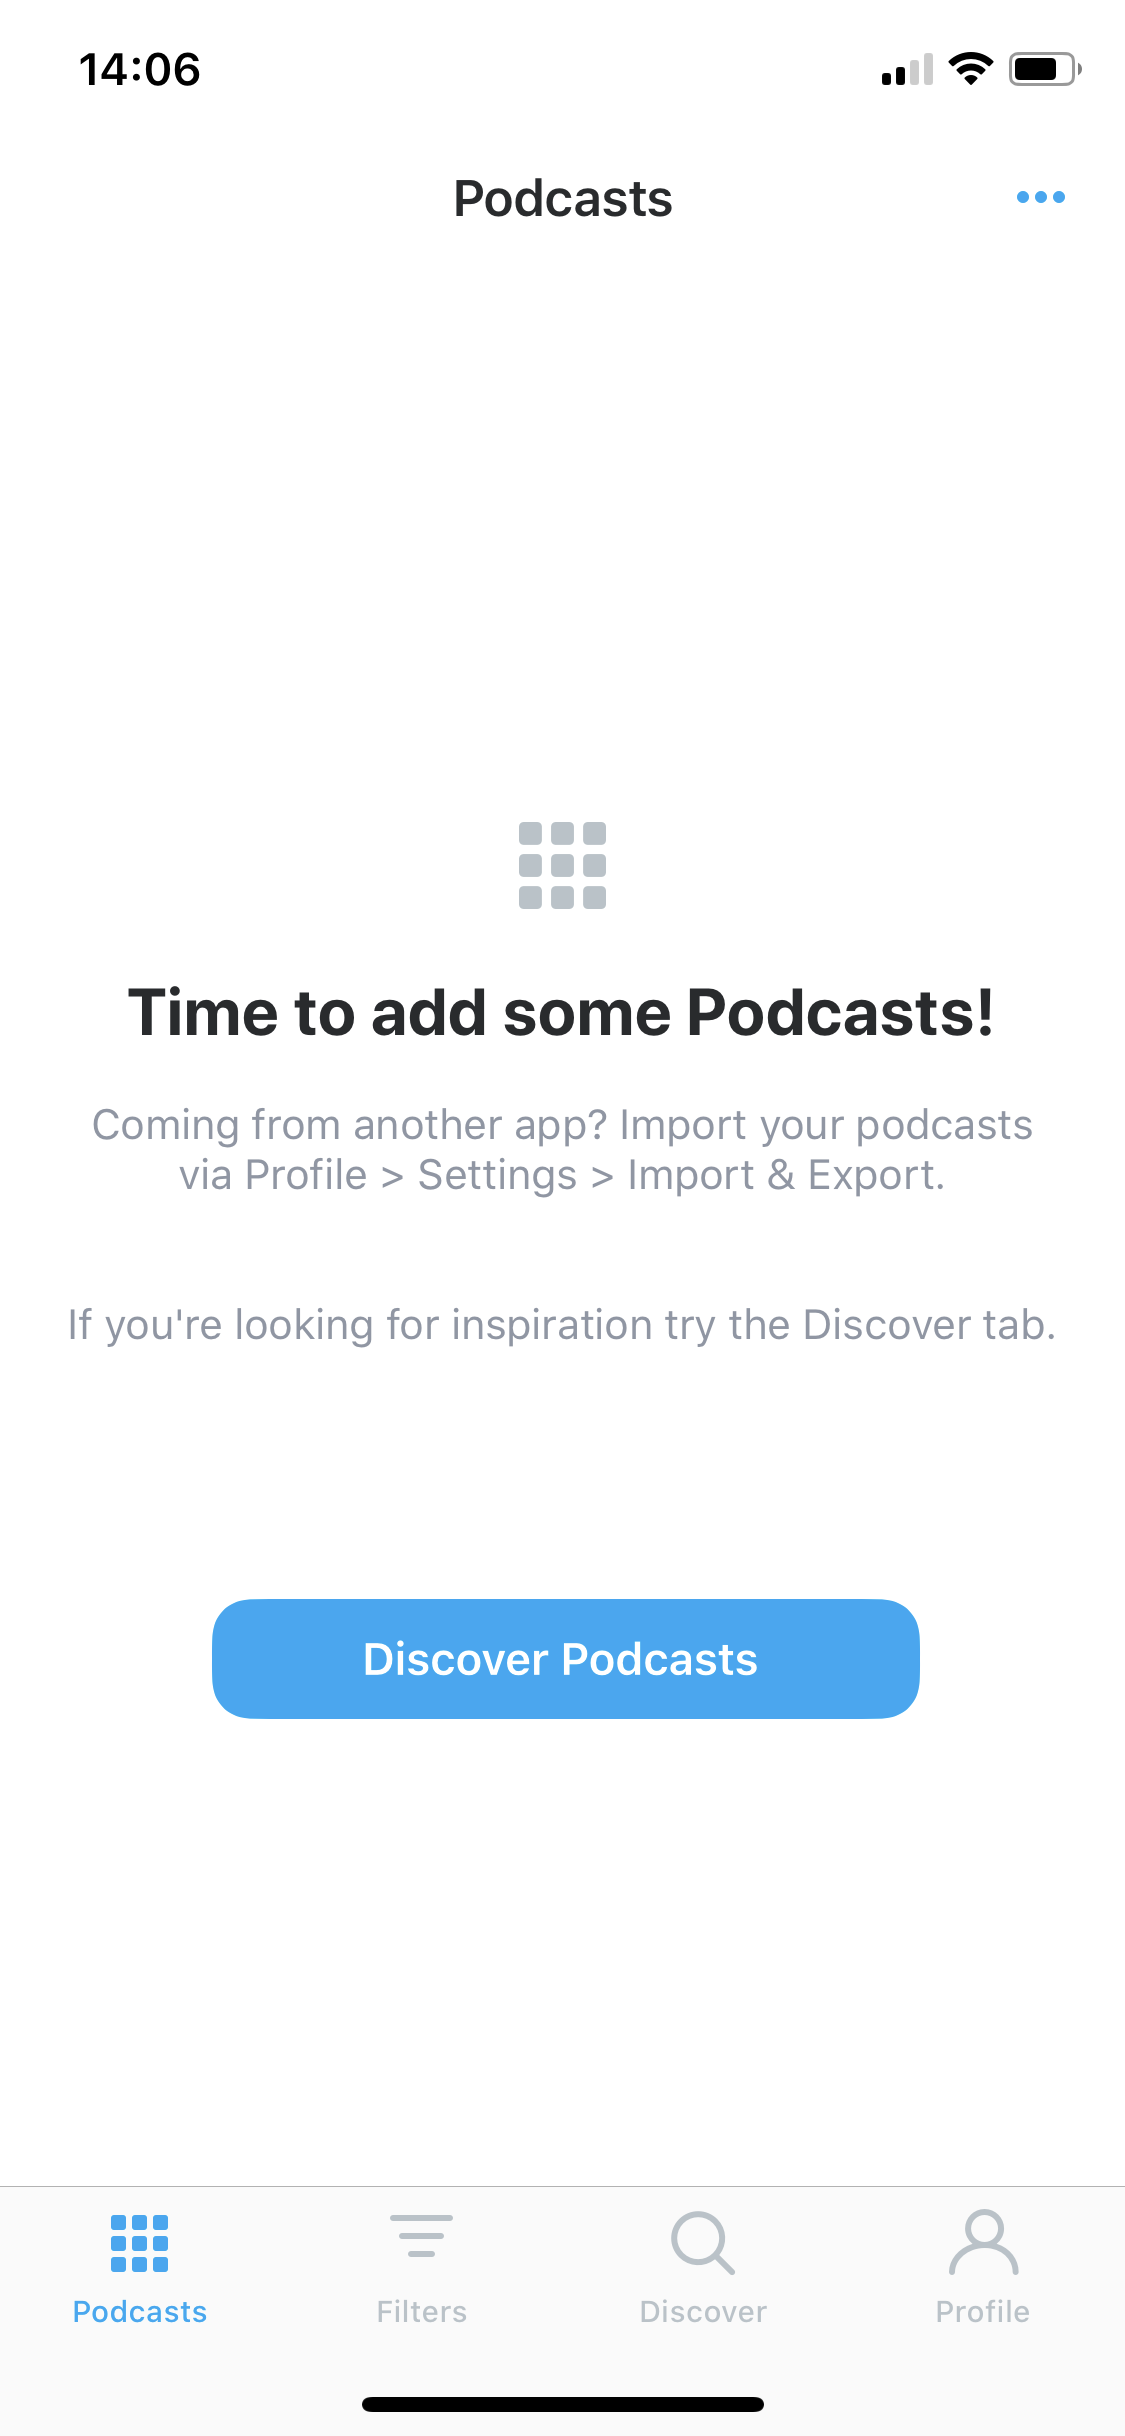 Time to add some podcasts! screenshot